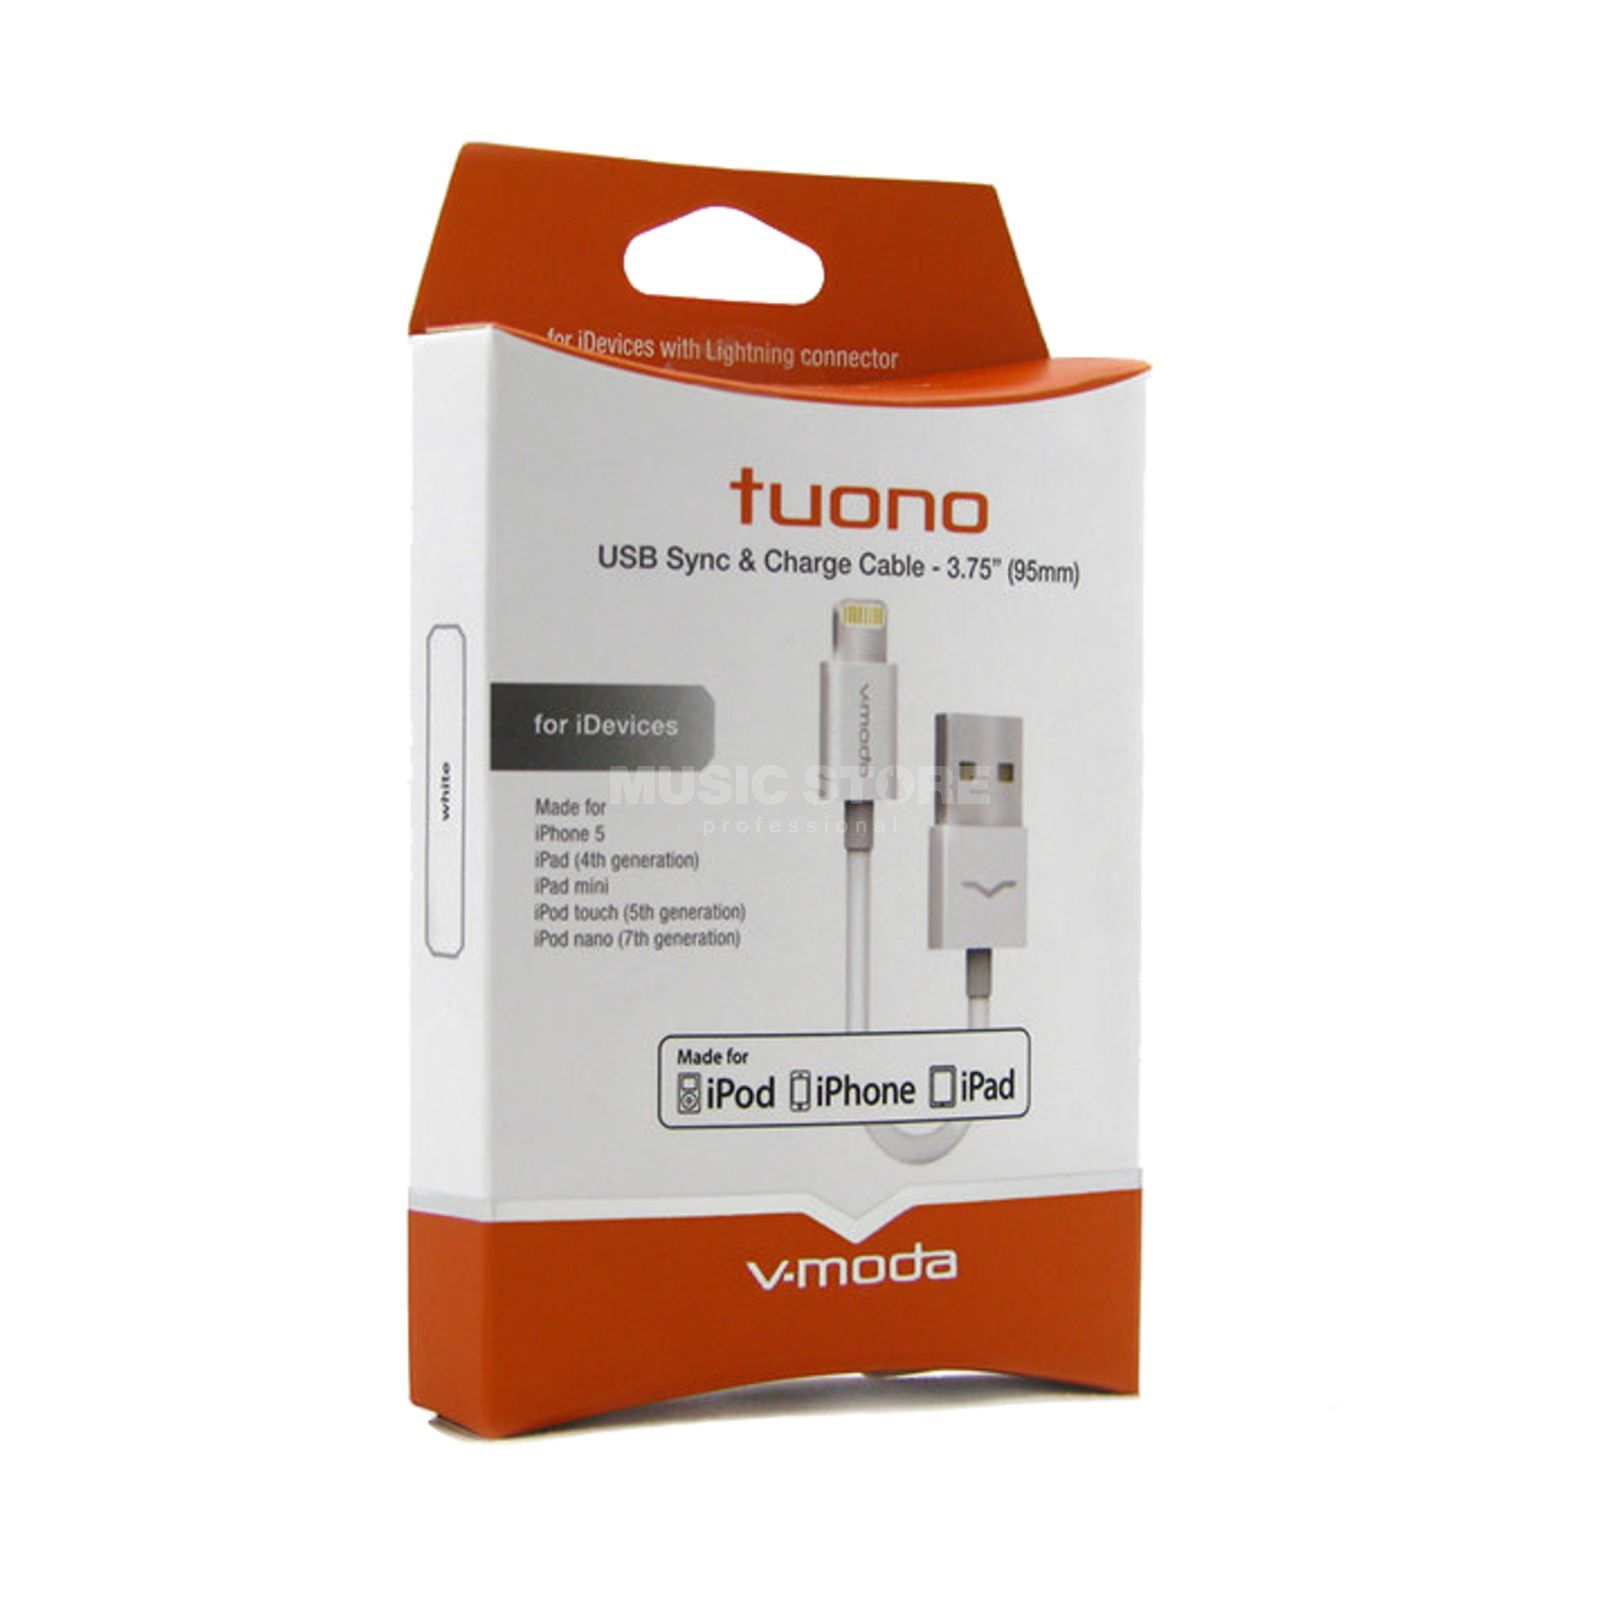 V-Moda Tuono Lightning Cable white Kabel für iDevices Produktbild